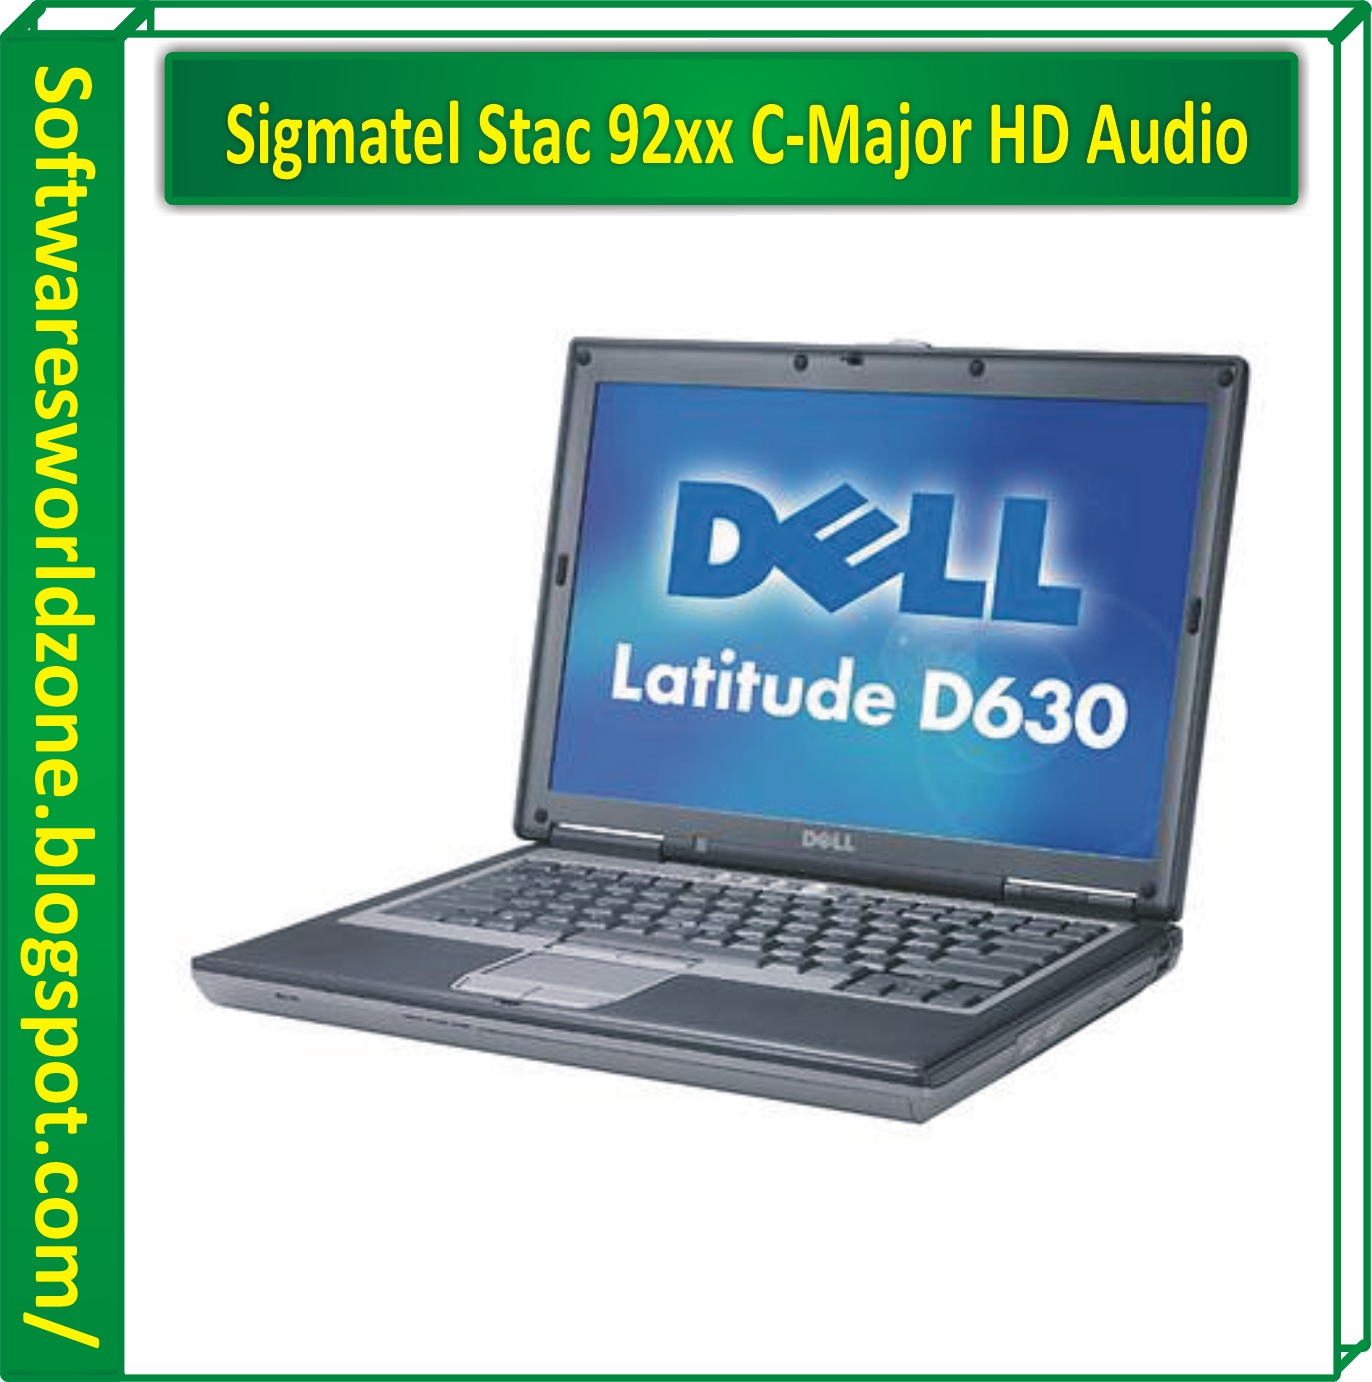 sigmatel stac 92xx c-major hd audio driver